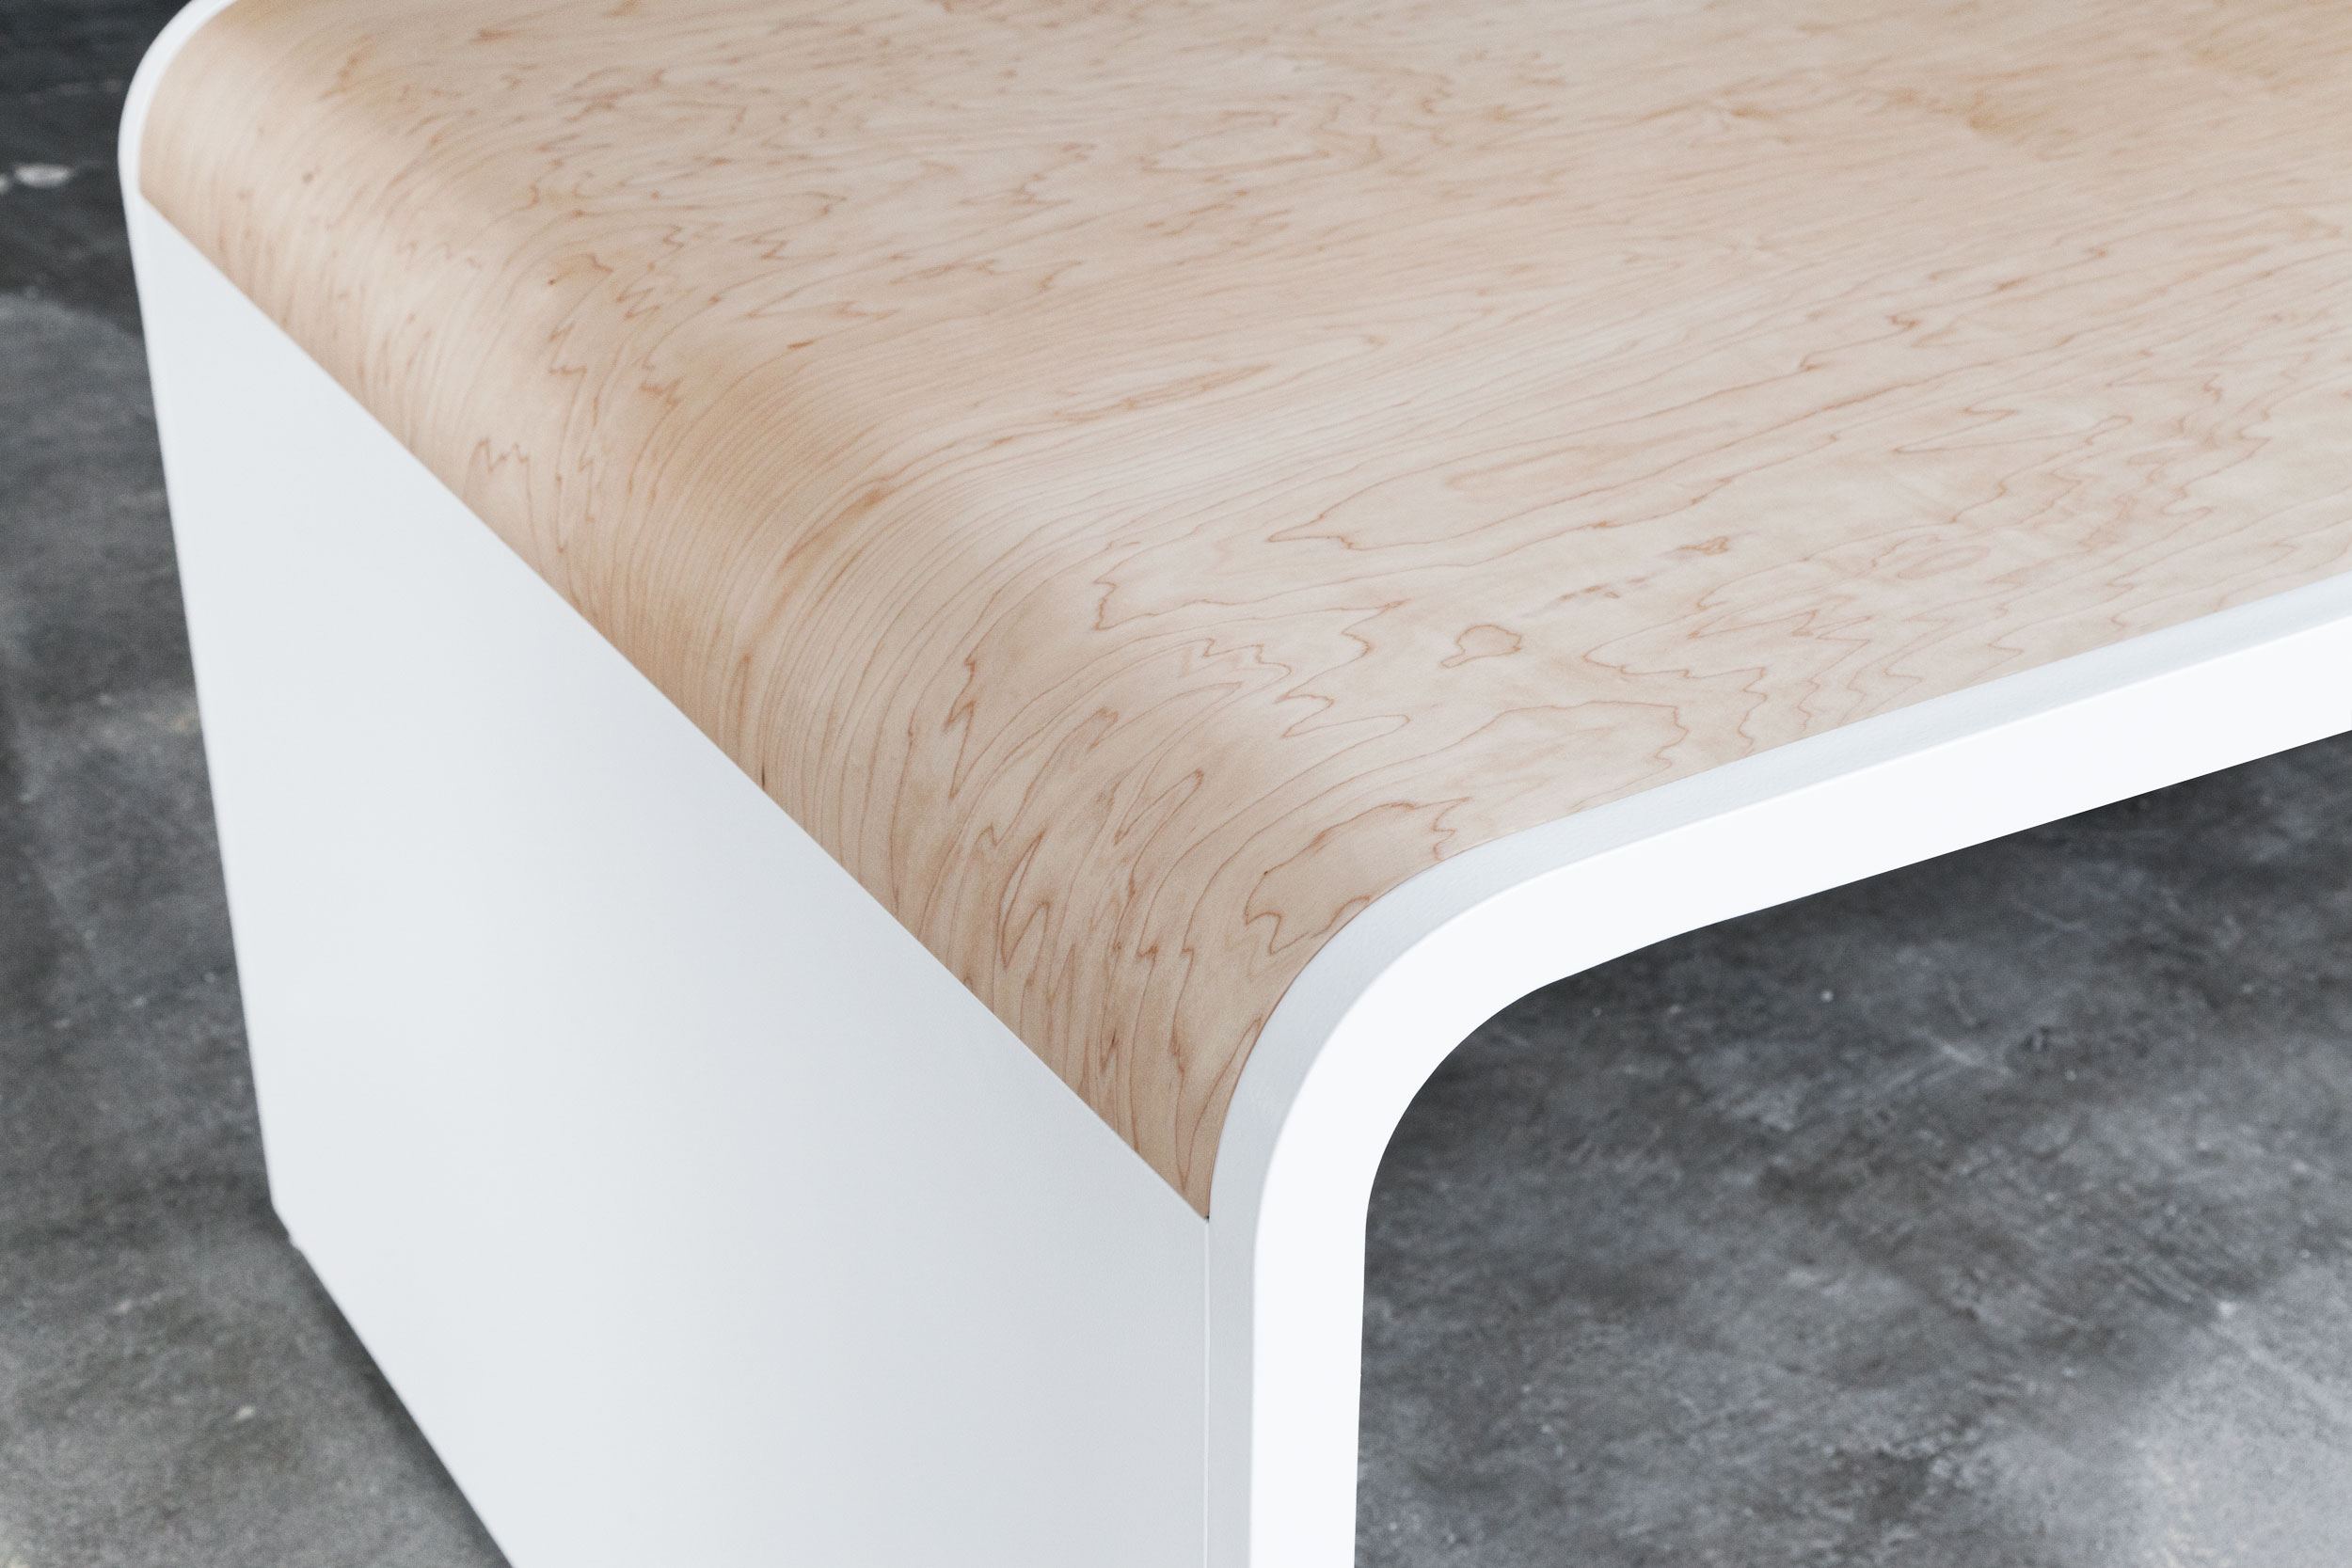 The first of two tables is 36 feet long, and made of bent steel and maple plywood veneer. The table was designed and engineered in 4 sections so that it could be fabricated by local craftsman in Los Angeles and shipped to Atlanta.